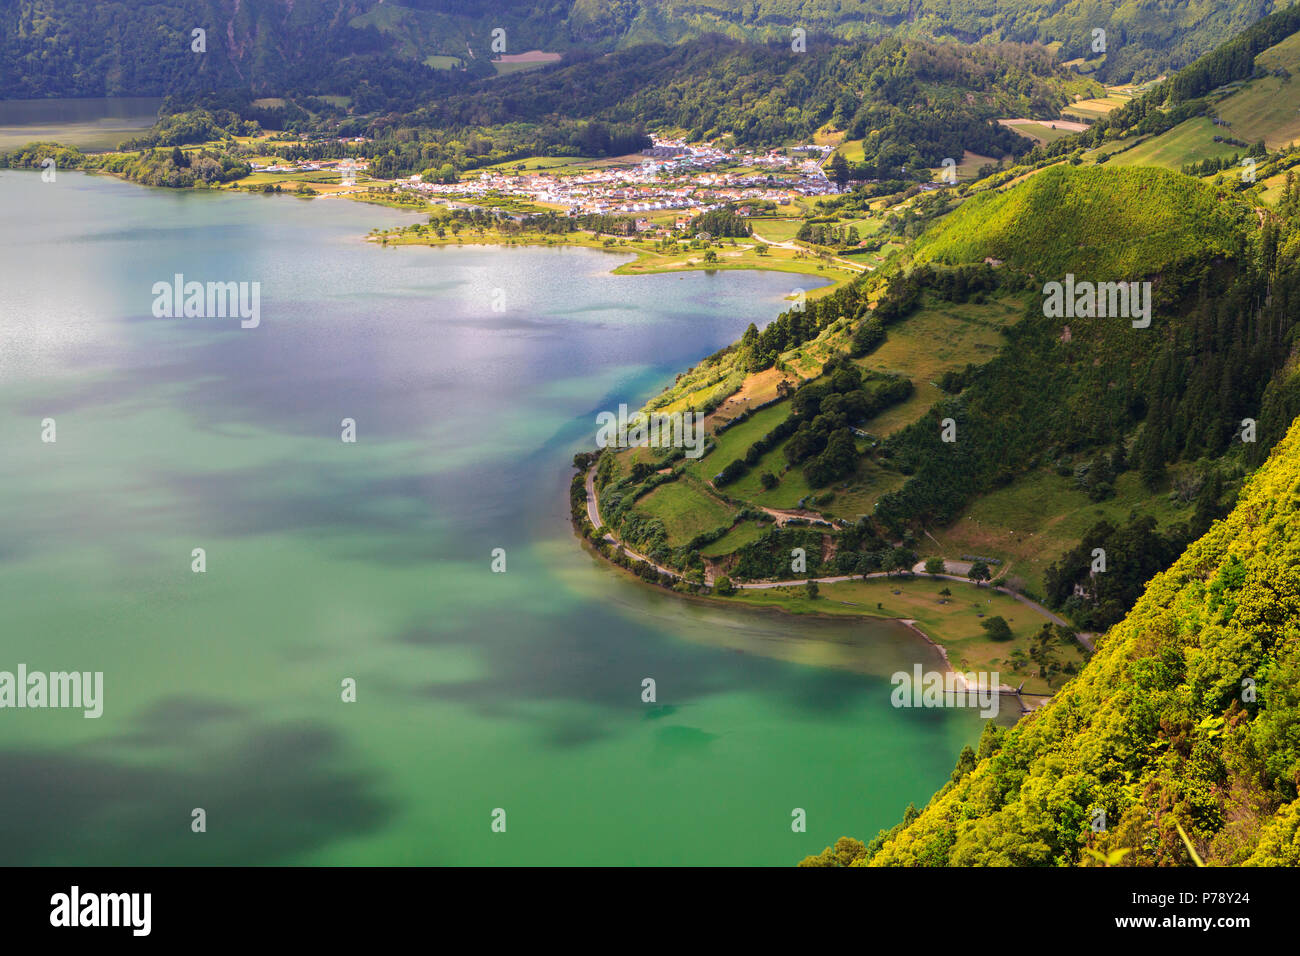 Lagoa das Sete Cidades, twin lakes in Sao Miguel, Azores Stock Photo